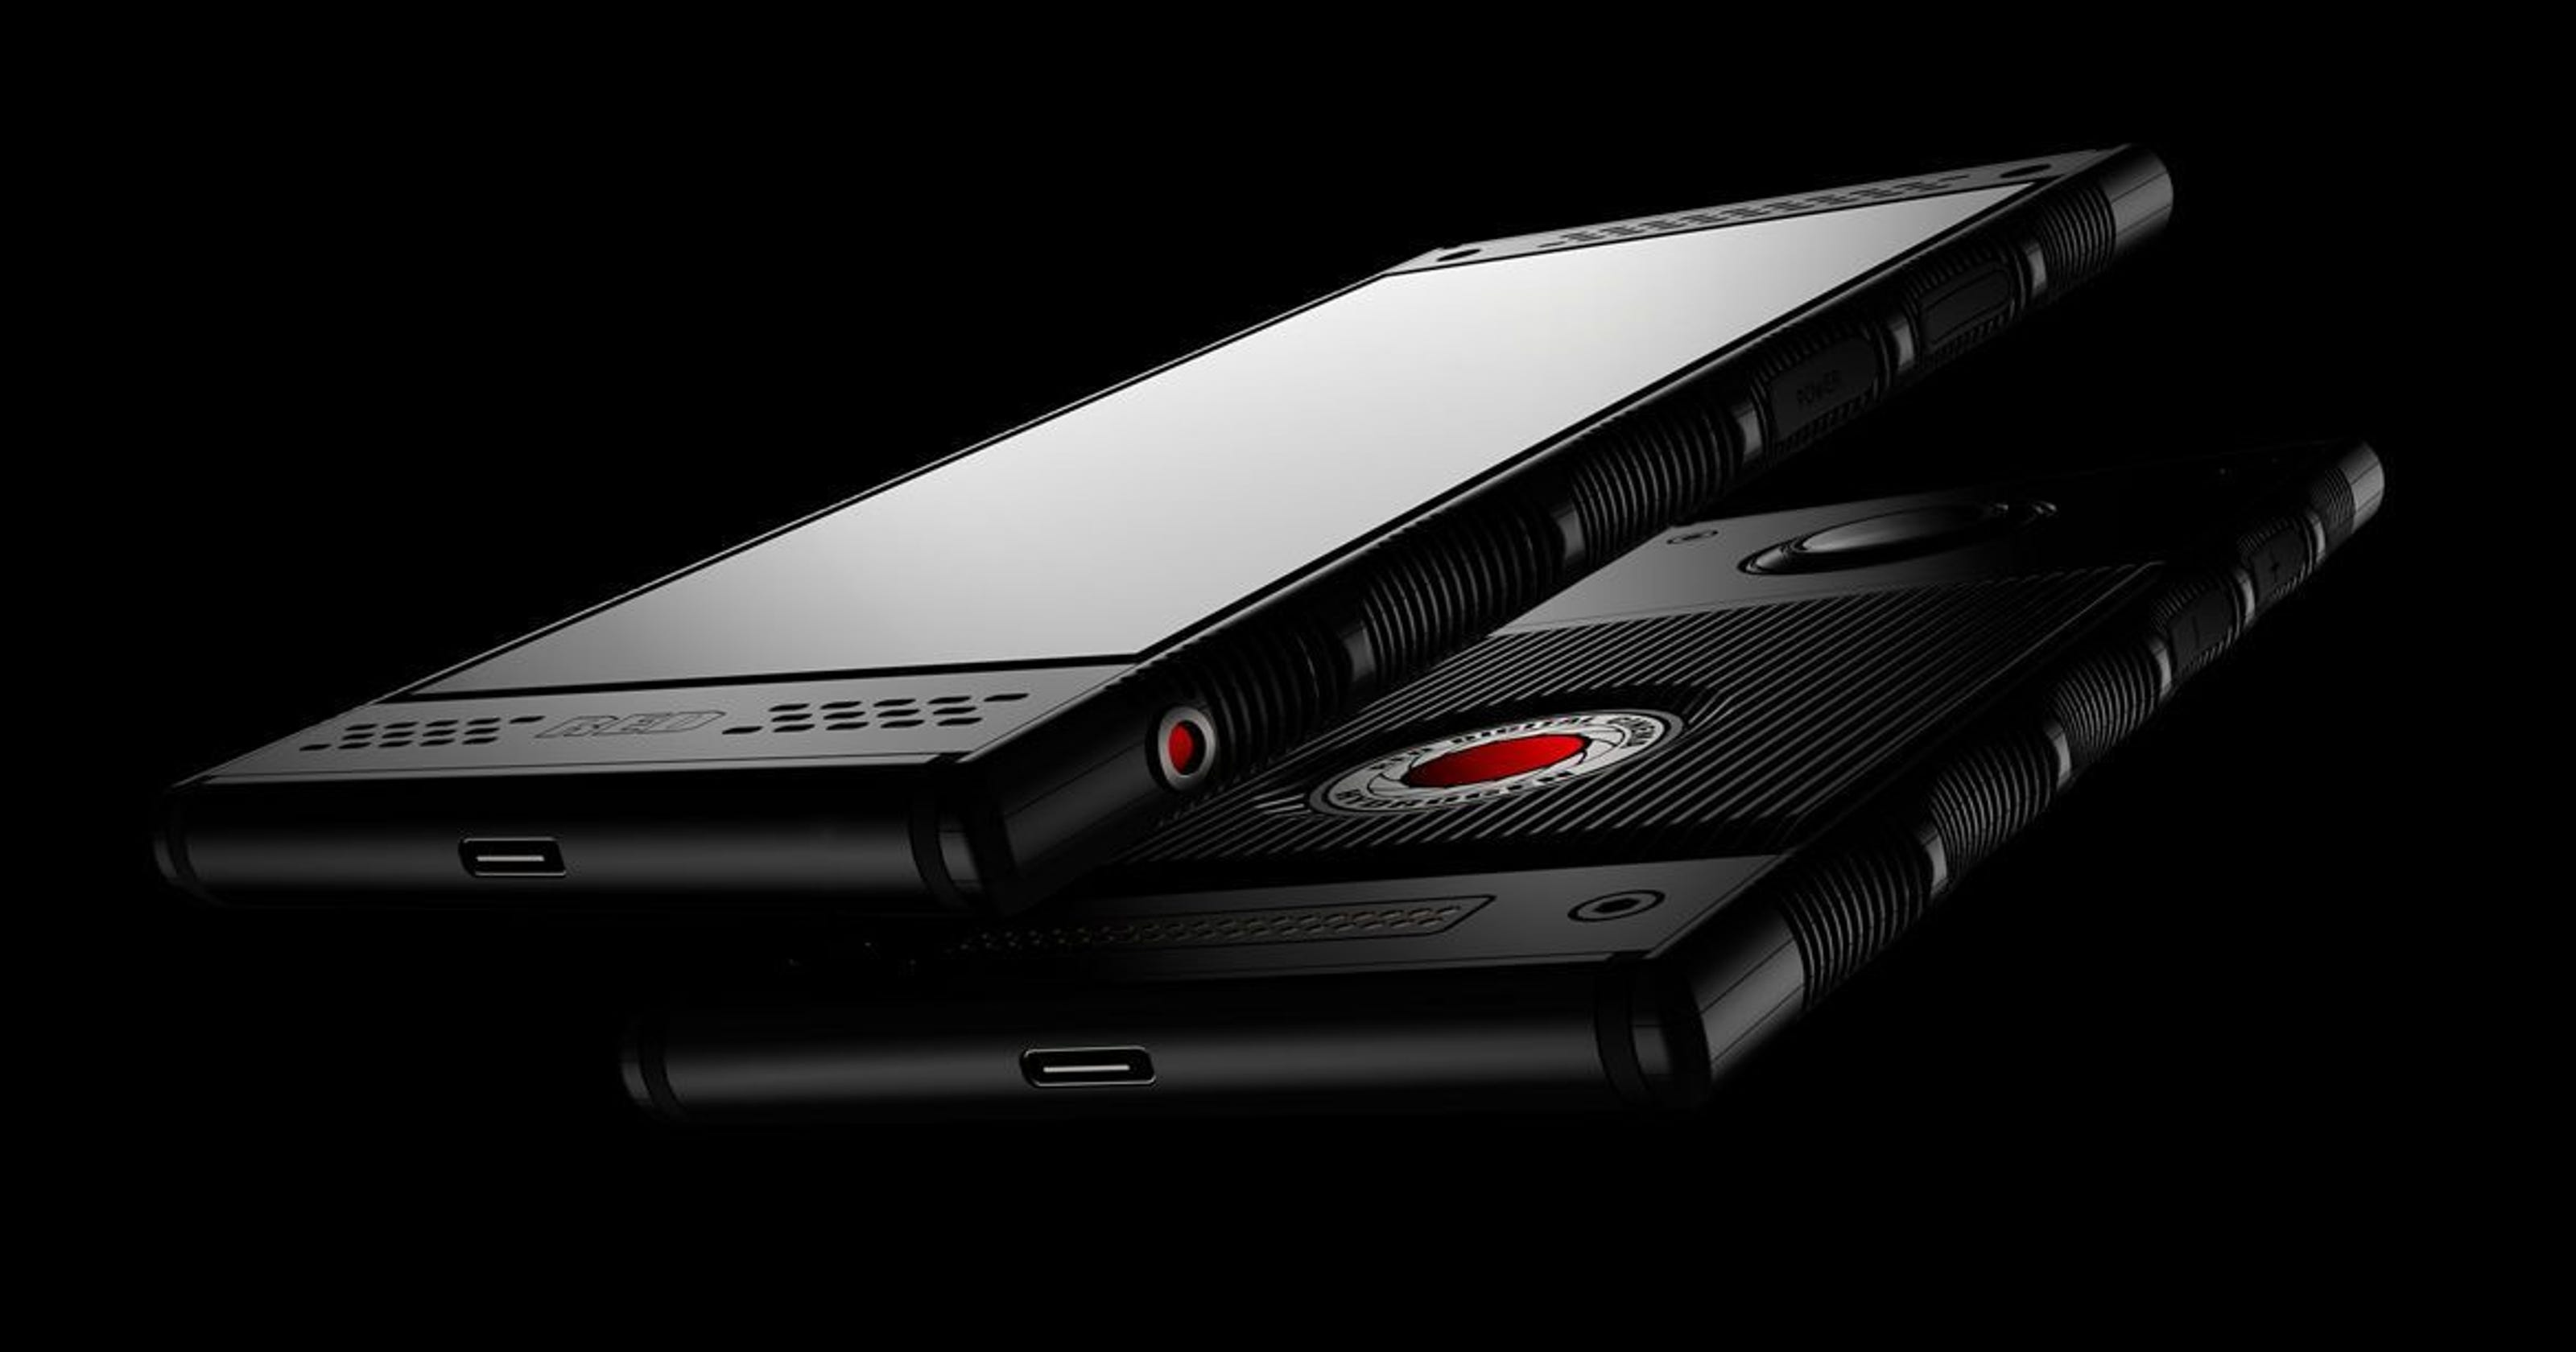 RED Hydrogen One holographic phone doesn't live up to cost